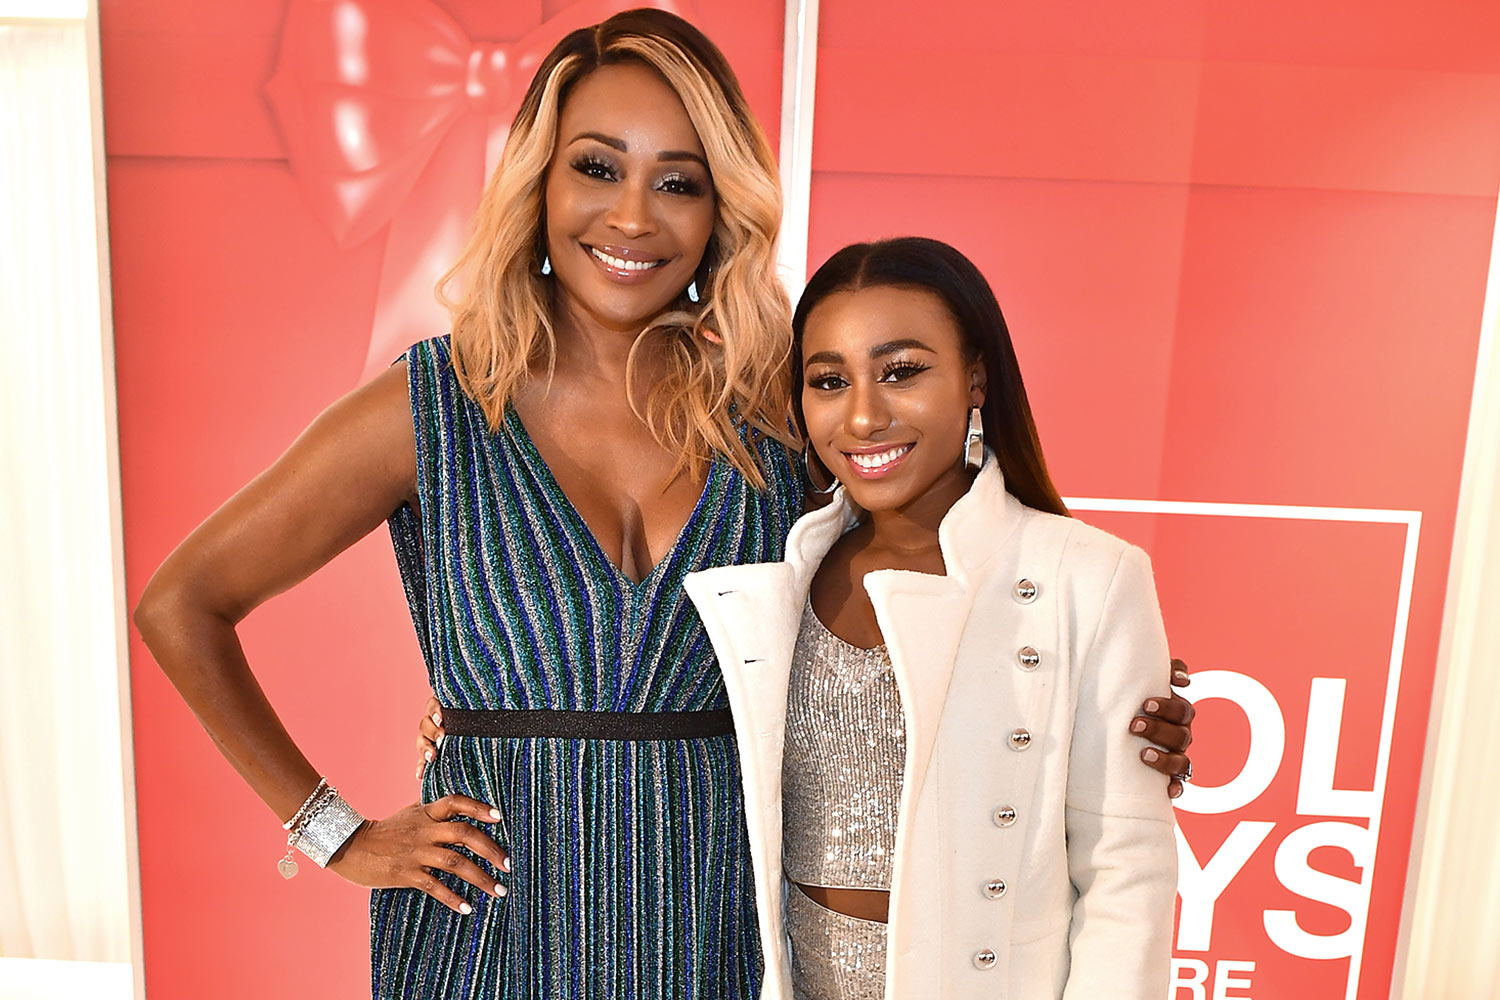 Cynthia Bailey poses with her daughter Noelle Forde Robinson